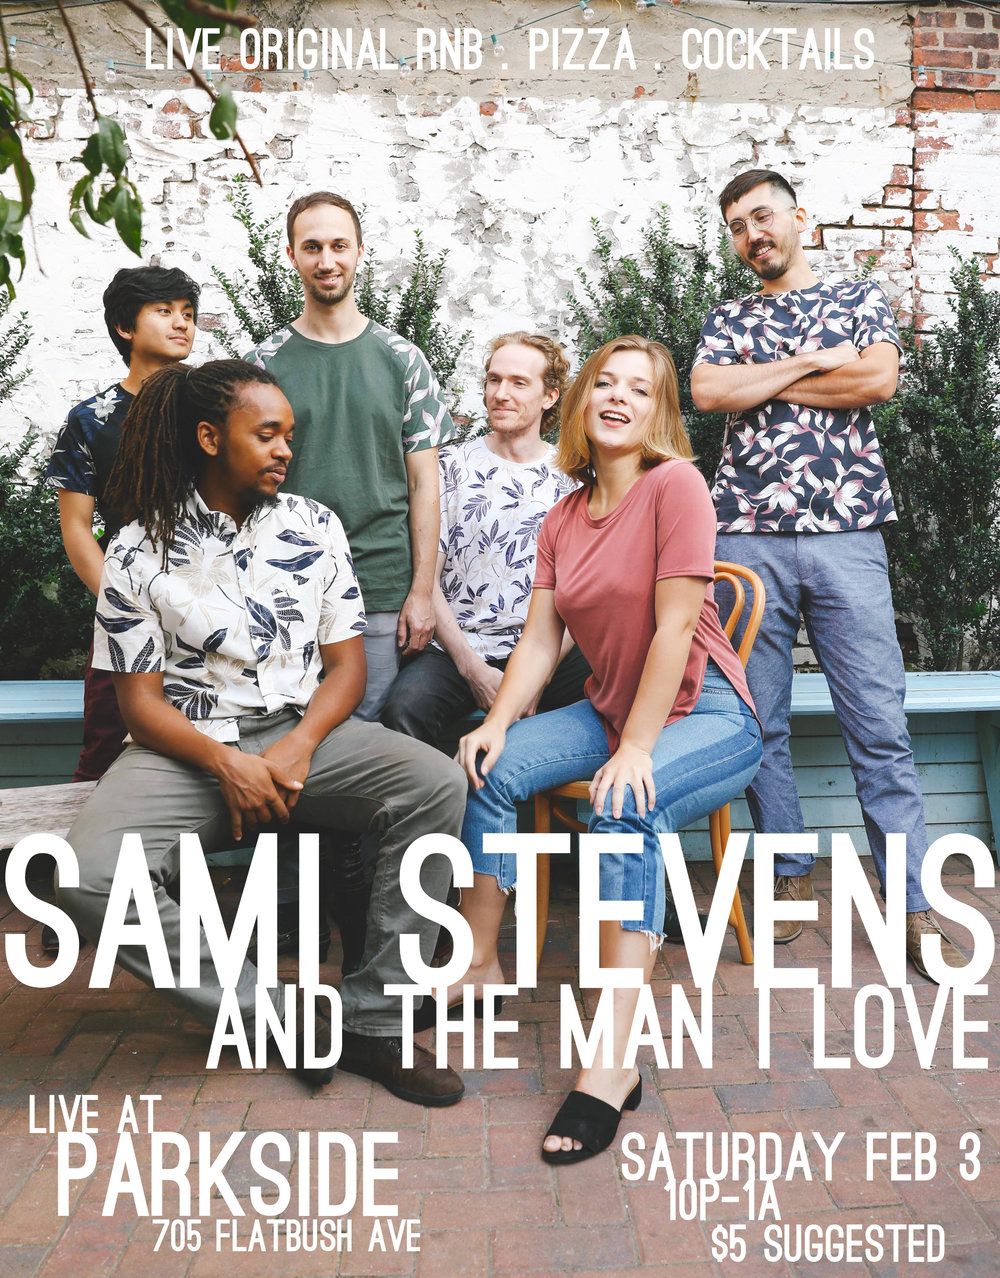 Sami Stevens and The Man I Love, Live at Parkside, 705 Flatbush Avenue. Saturday February 3rd, 10 PM to 1 AM, $5 suggested.